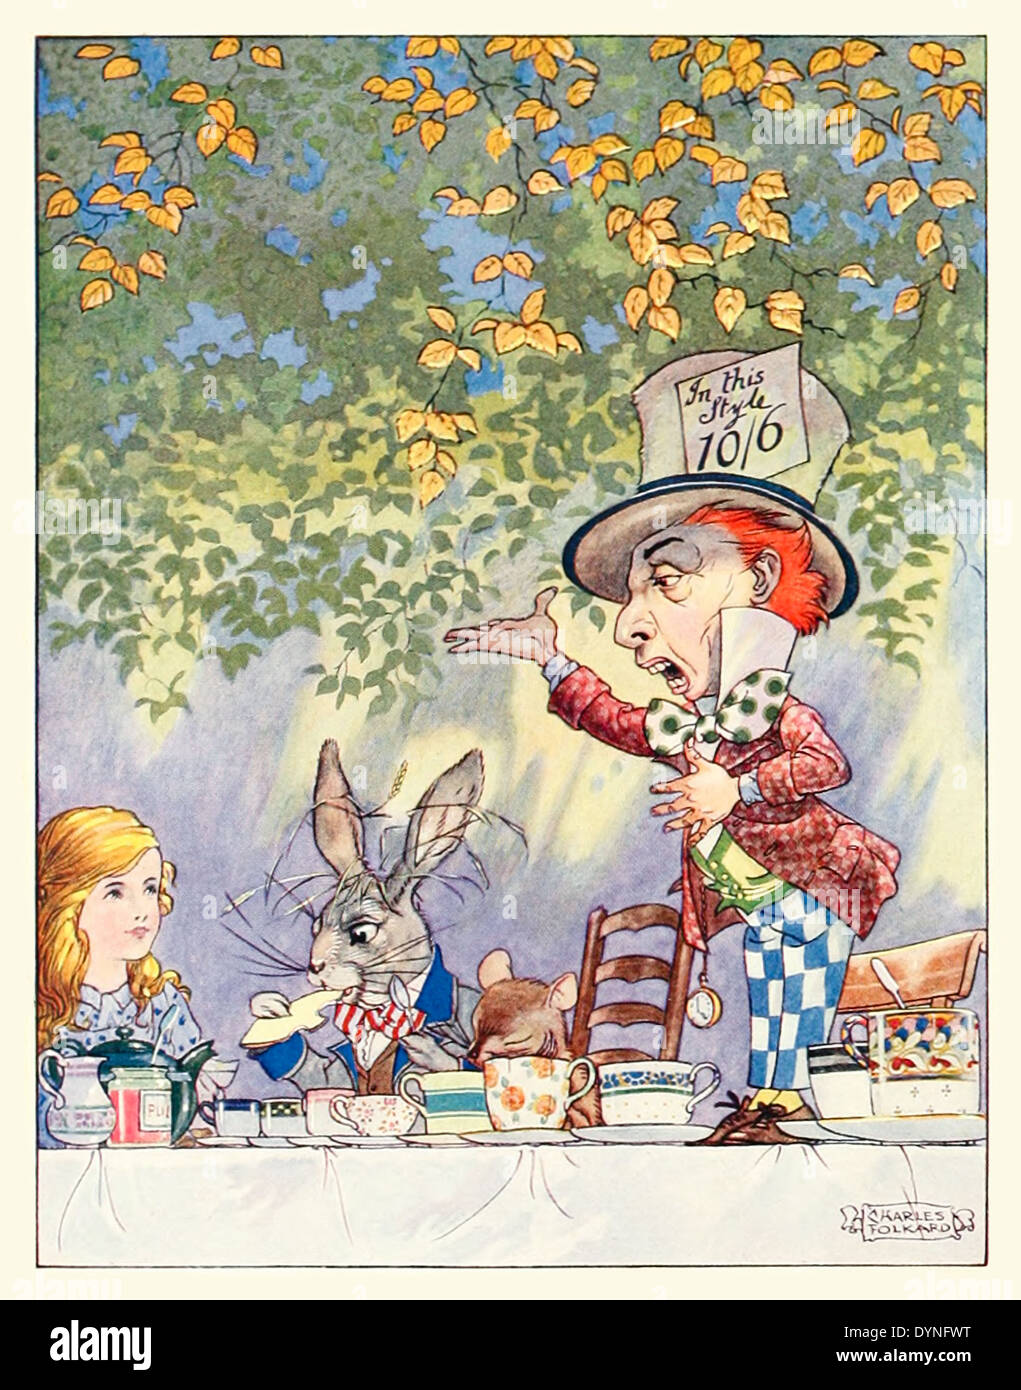 Frontispiece showing the Hatter's tea party from Lewis Carroll's 'Songs from Alice in Wonderland and Through the Looking-Glass' illustrated by Charles James Folkard (1878-1963). See description for more information - Stock Image